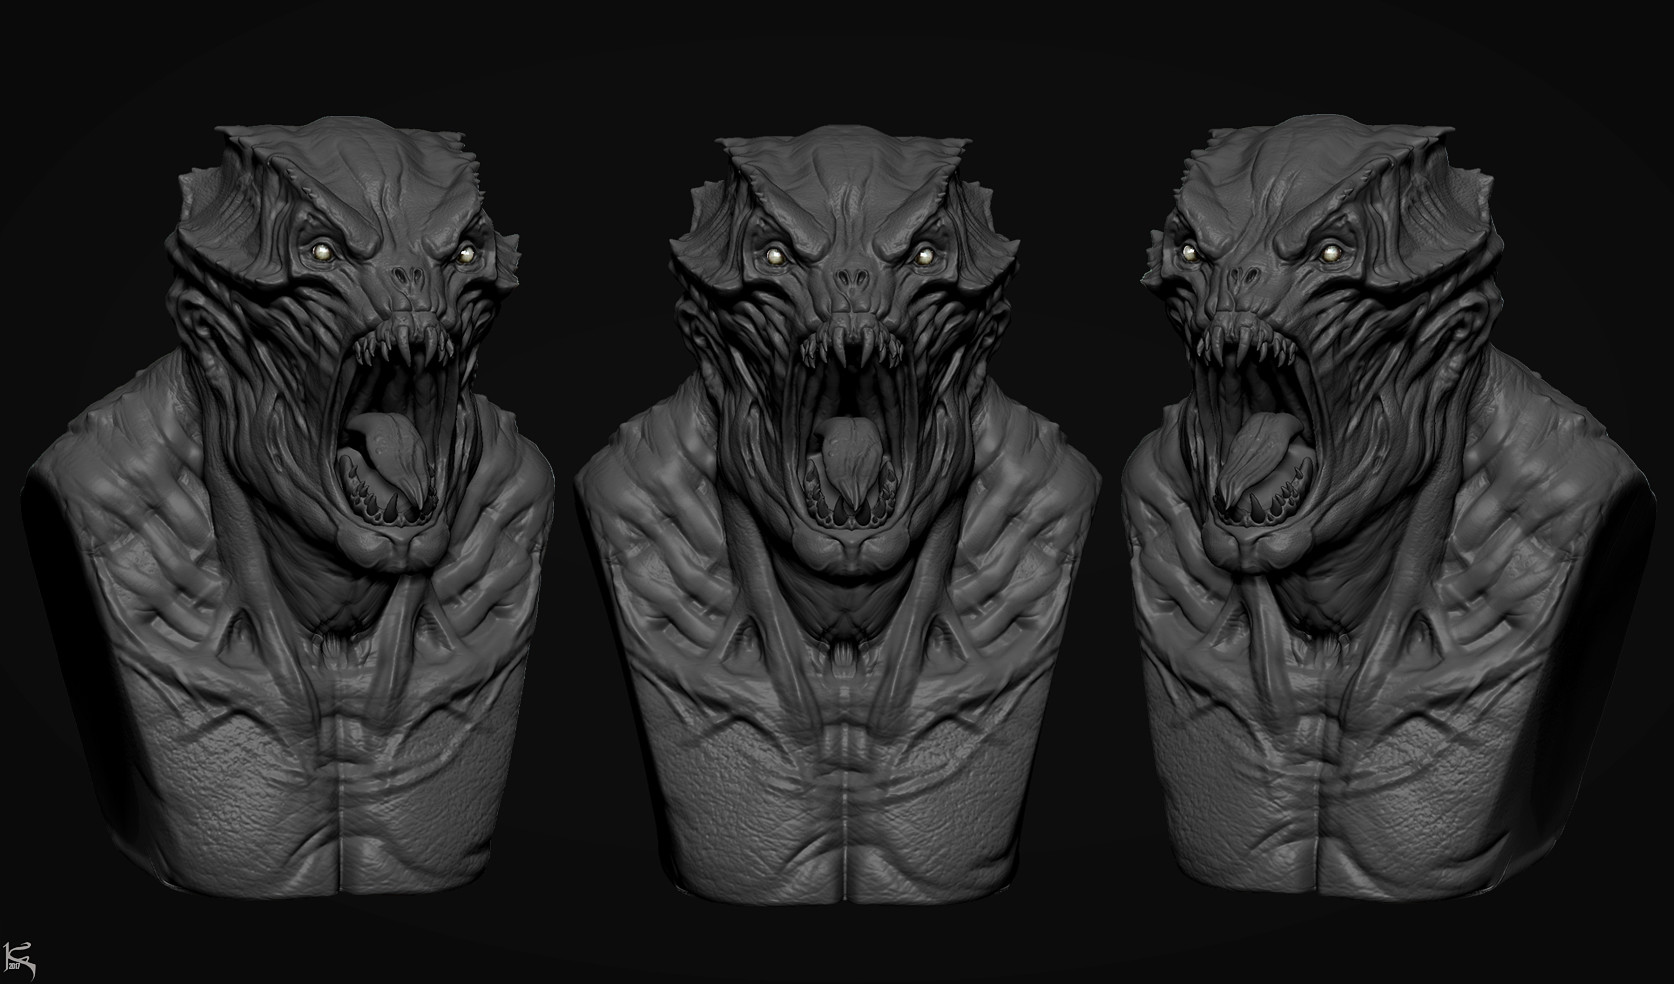 kenny-carmody-creature63-zbrush-screengrab-bw.jpg